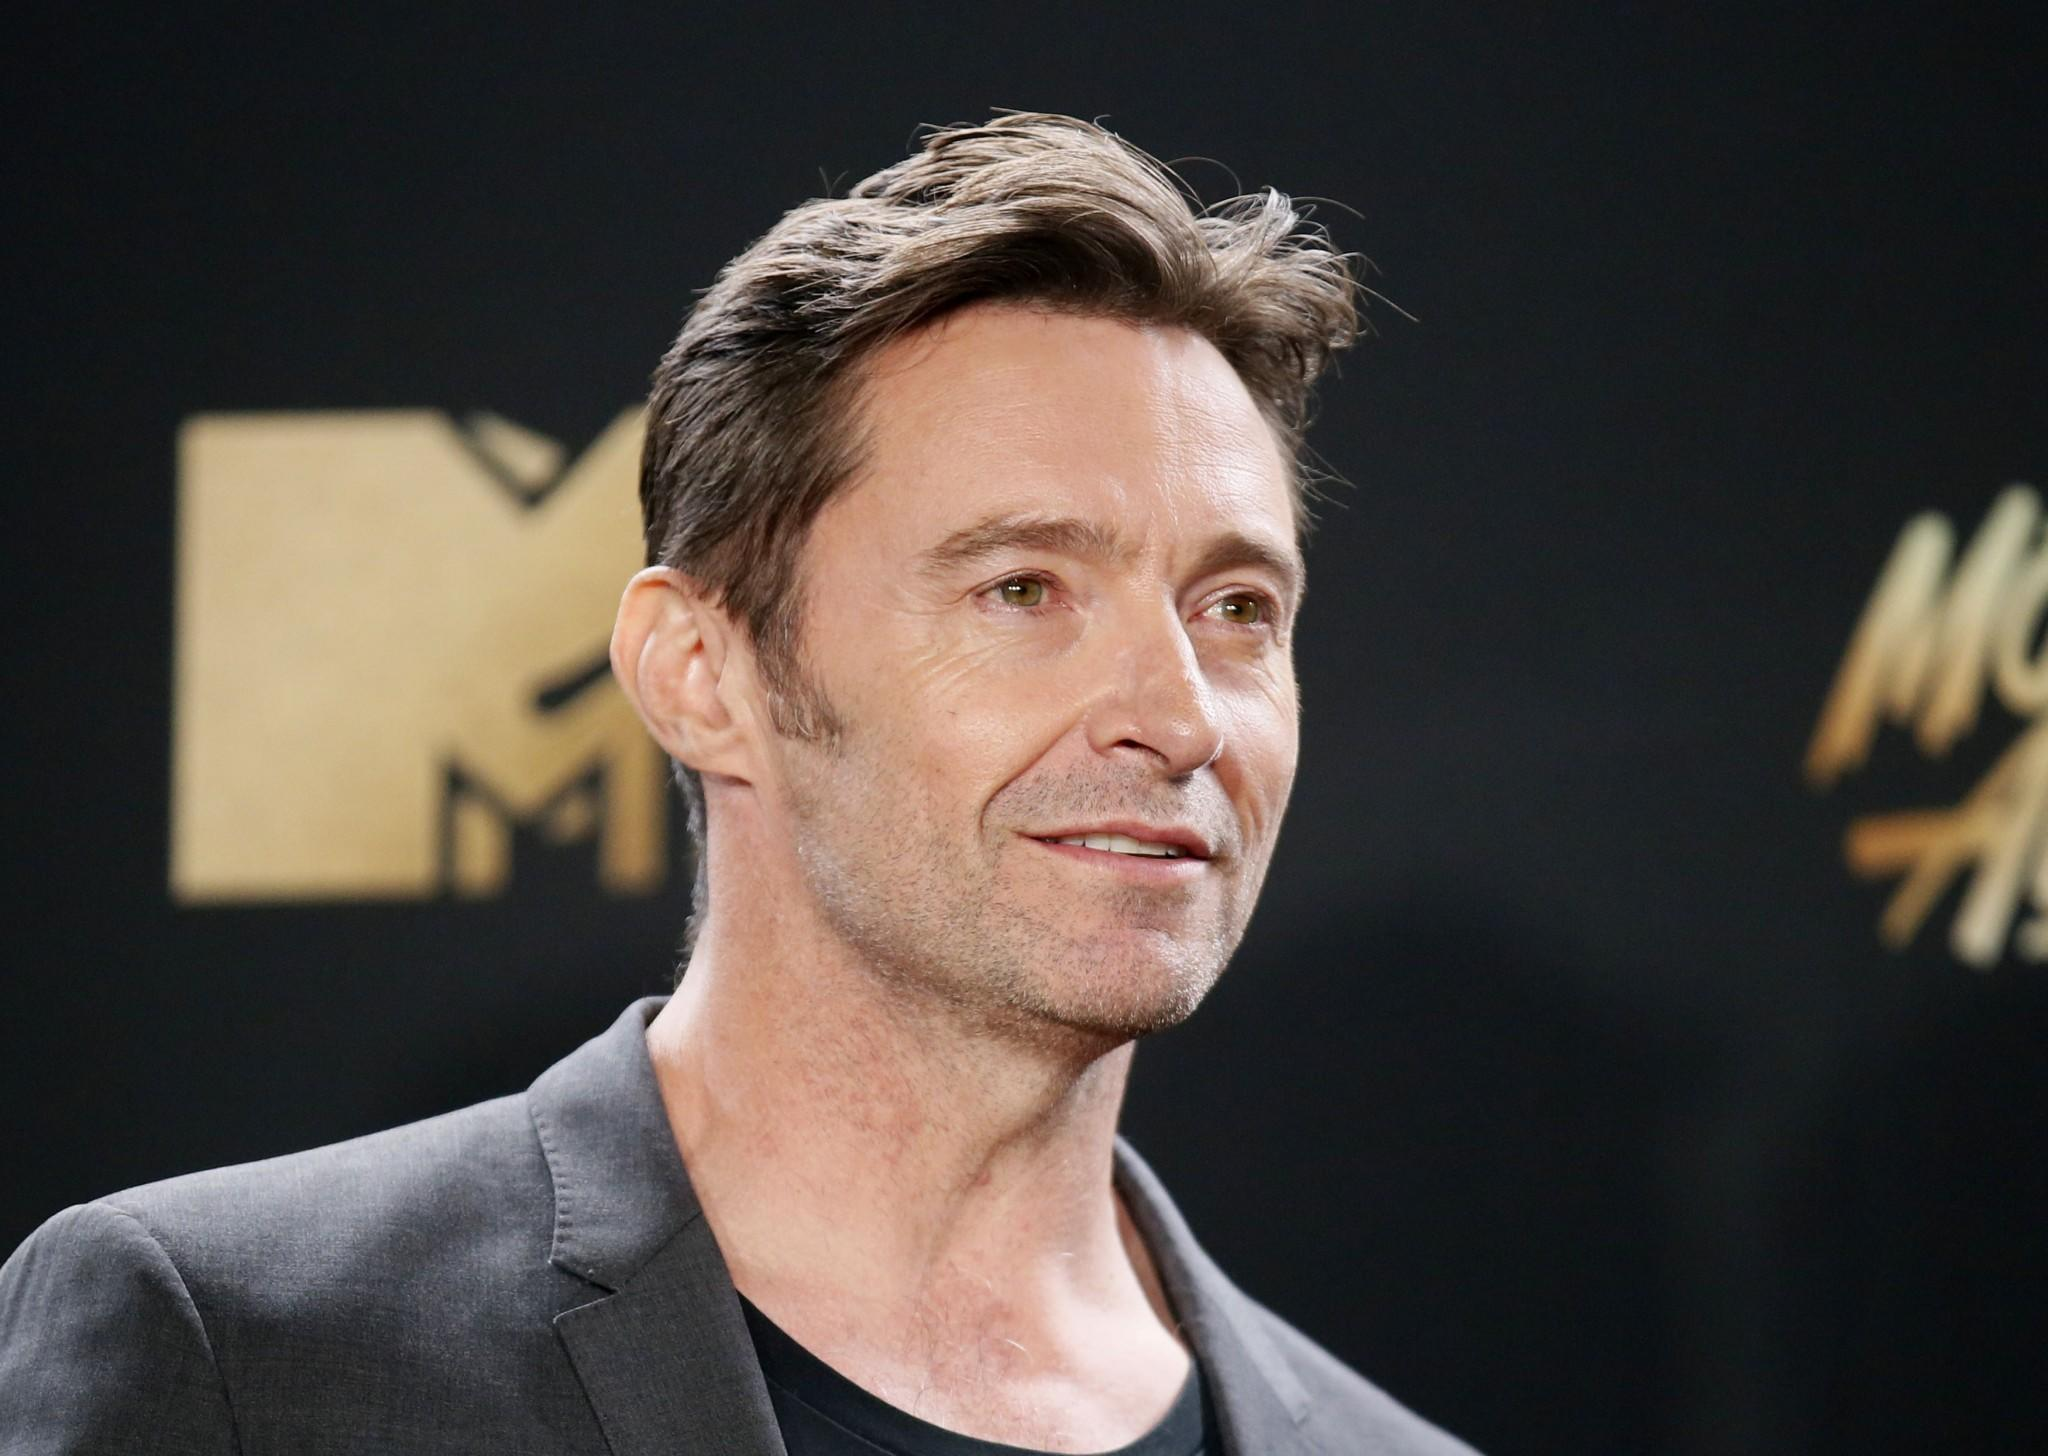 <p>This we can easily get our heads around. Writer Stuart Beattie wrote the character with Jackman in mind, and in fact, the 'Jack' part of the name is in his honour. But back in 2003, Disney didn't think that Jackman was a big enough star to carry it off, so they went with Depp. </p>